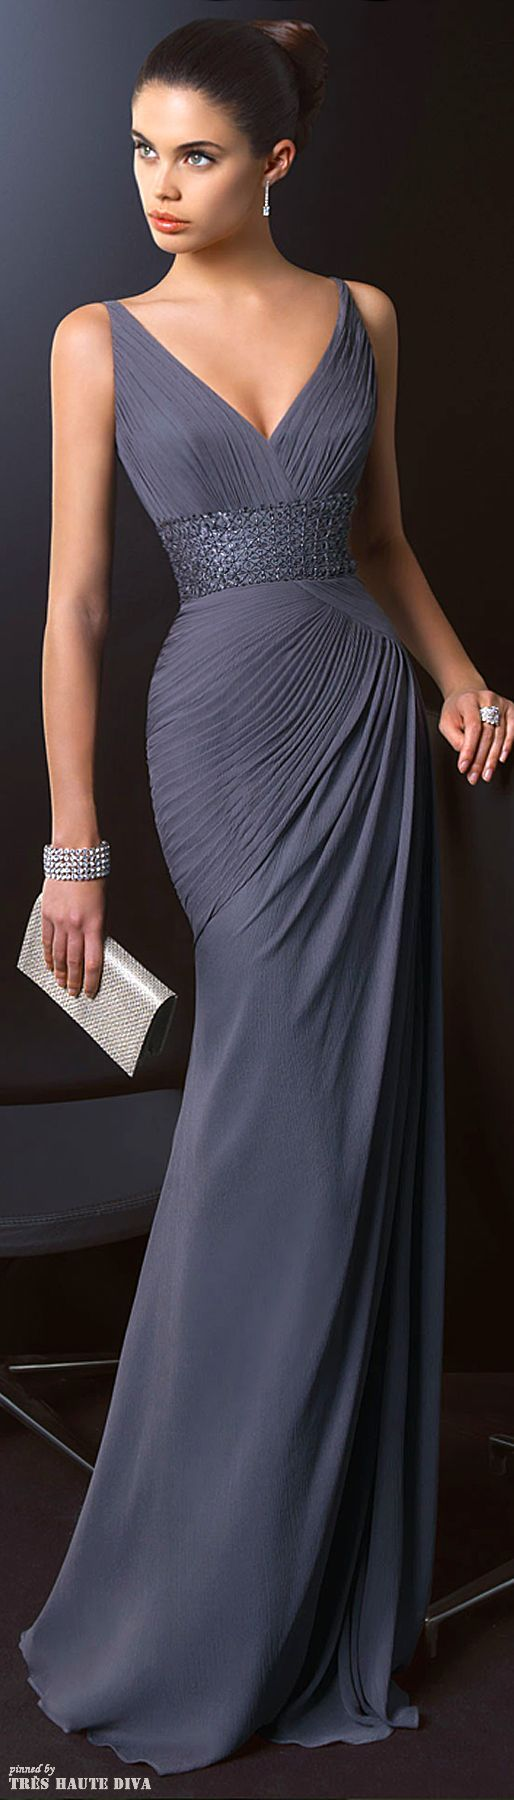 1000  ideas about Evening Gowns on Pinterest  Polyvore Evening ...